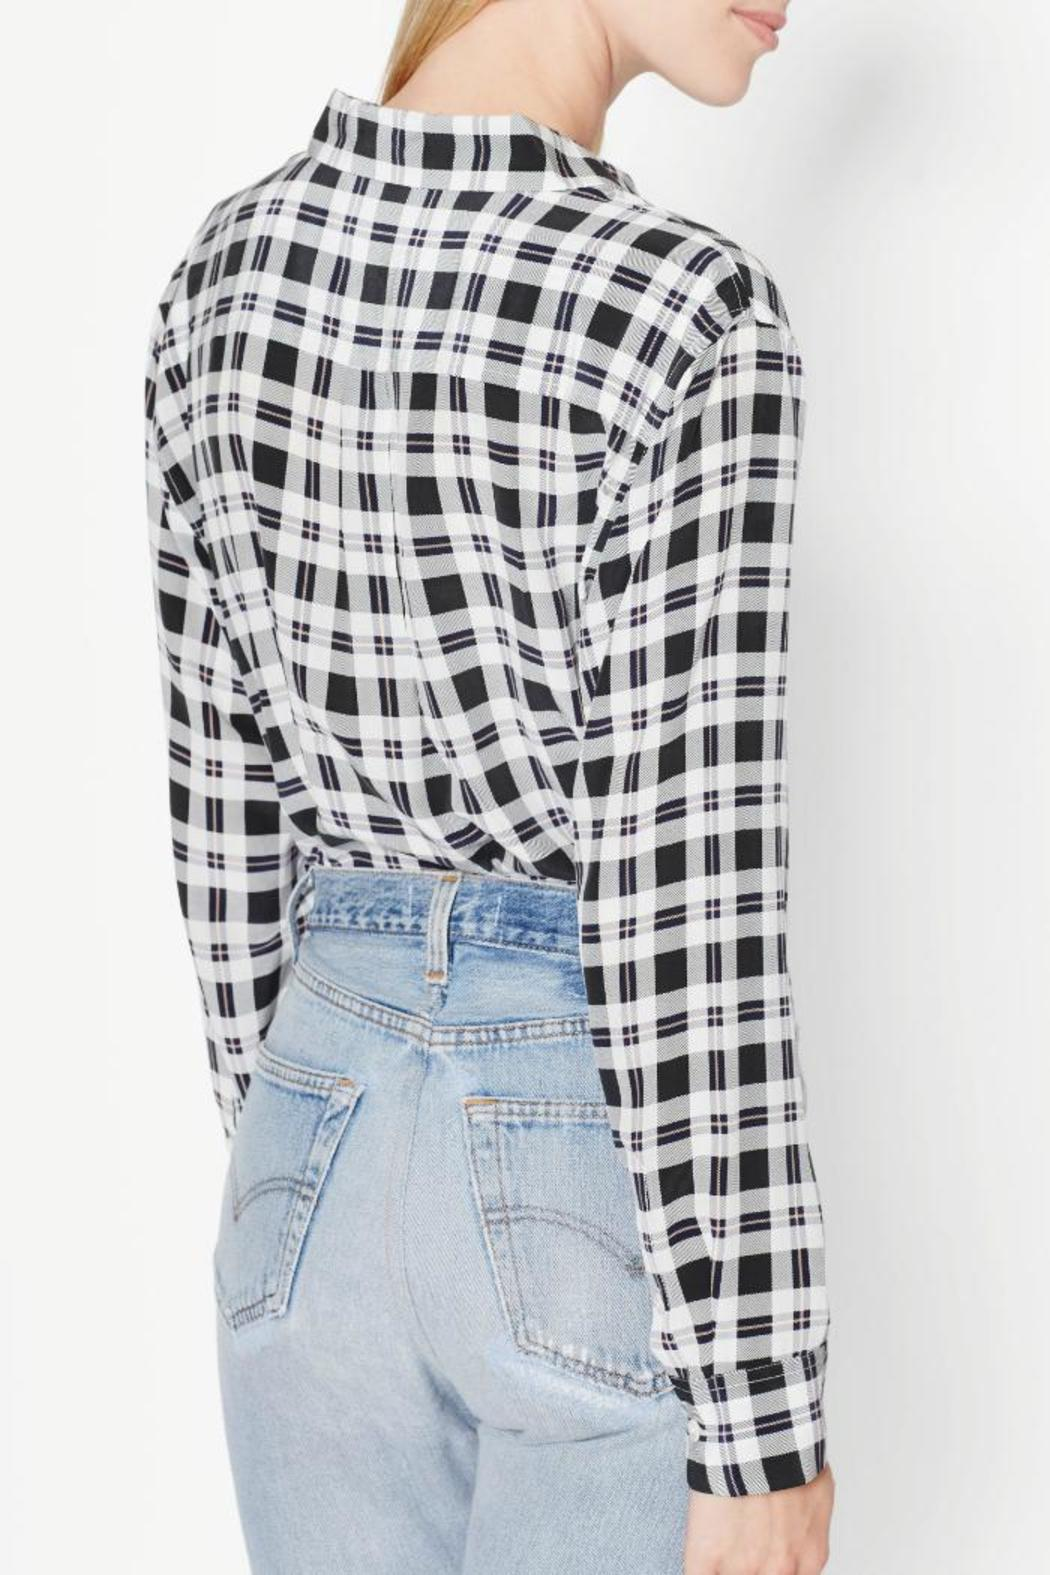 Equipment Signature In Multi Fever Plaid - Side Cropped Image